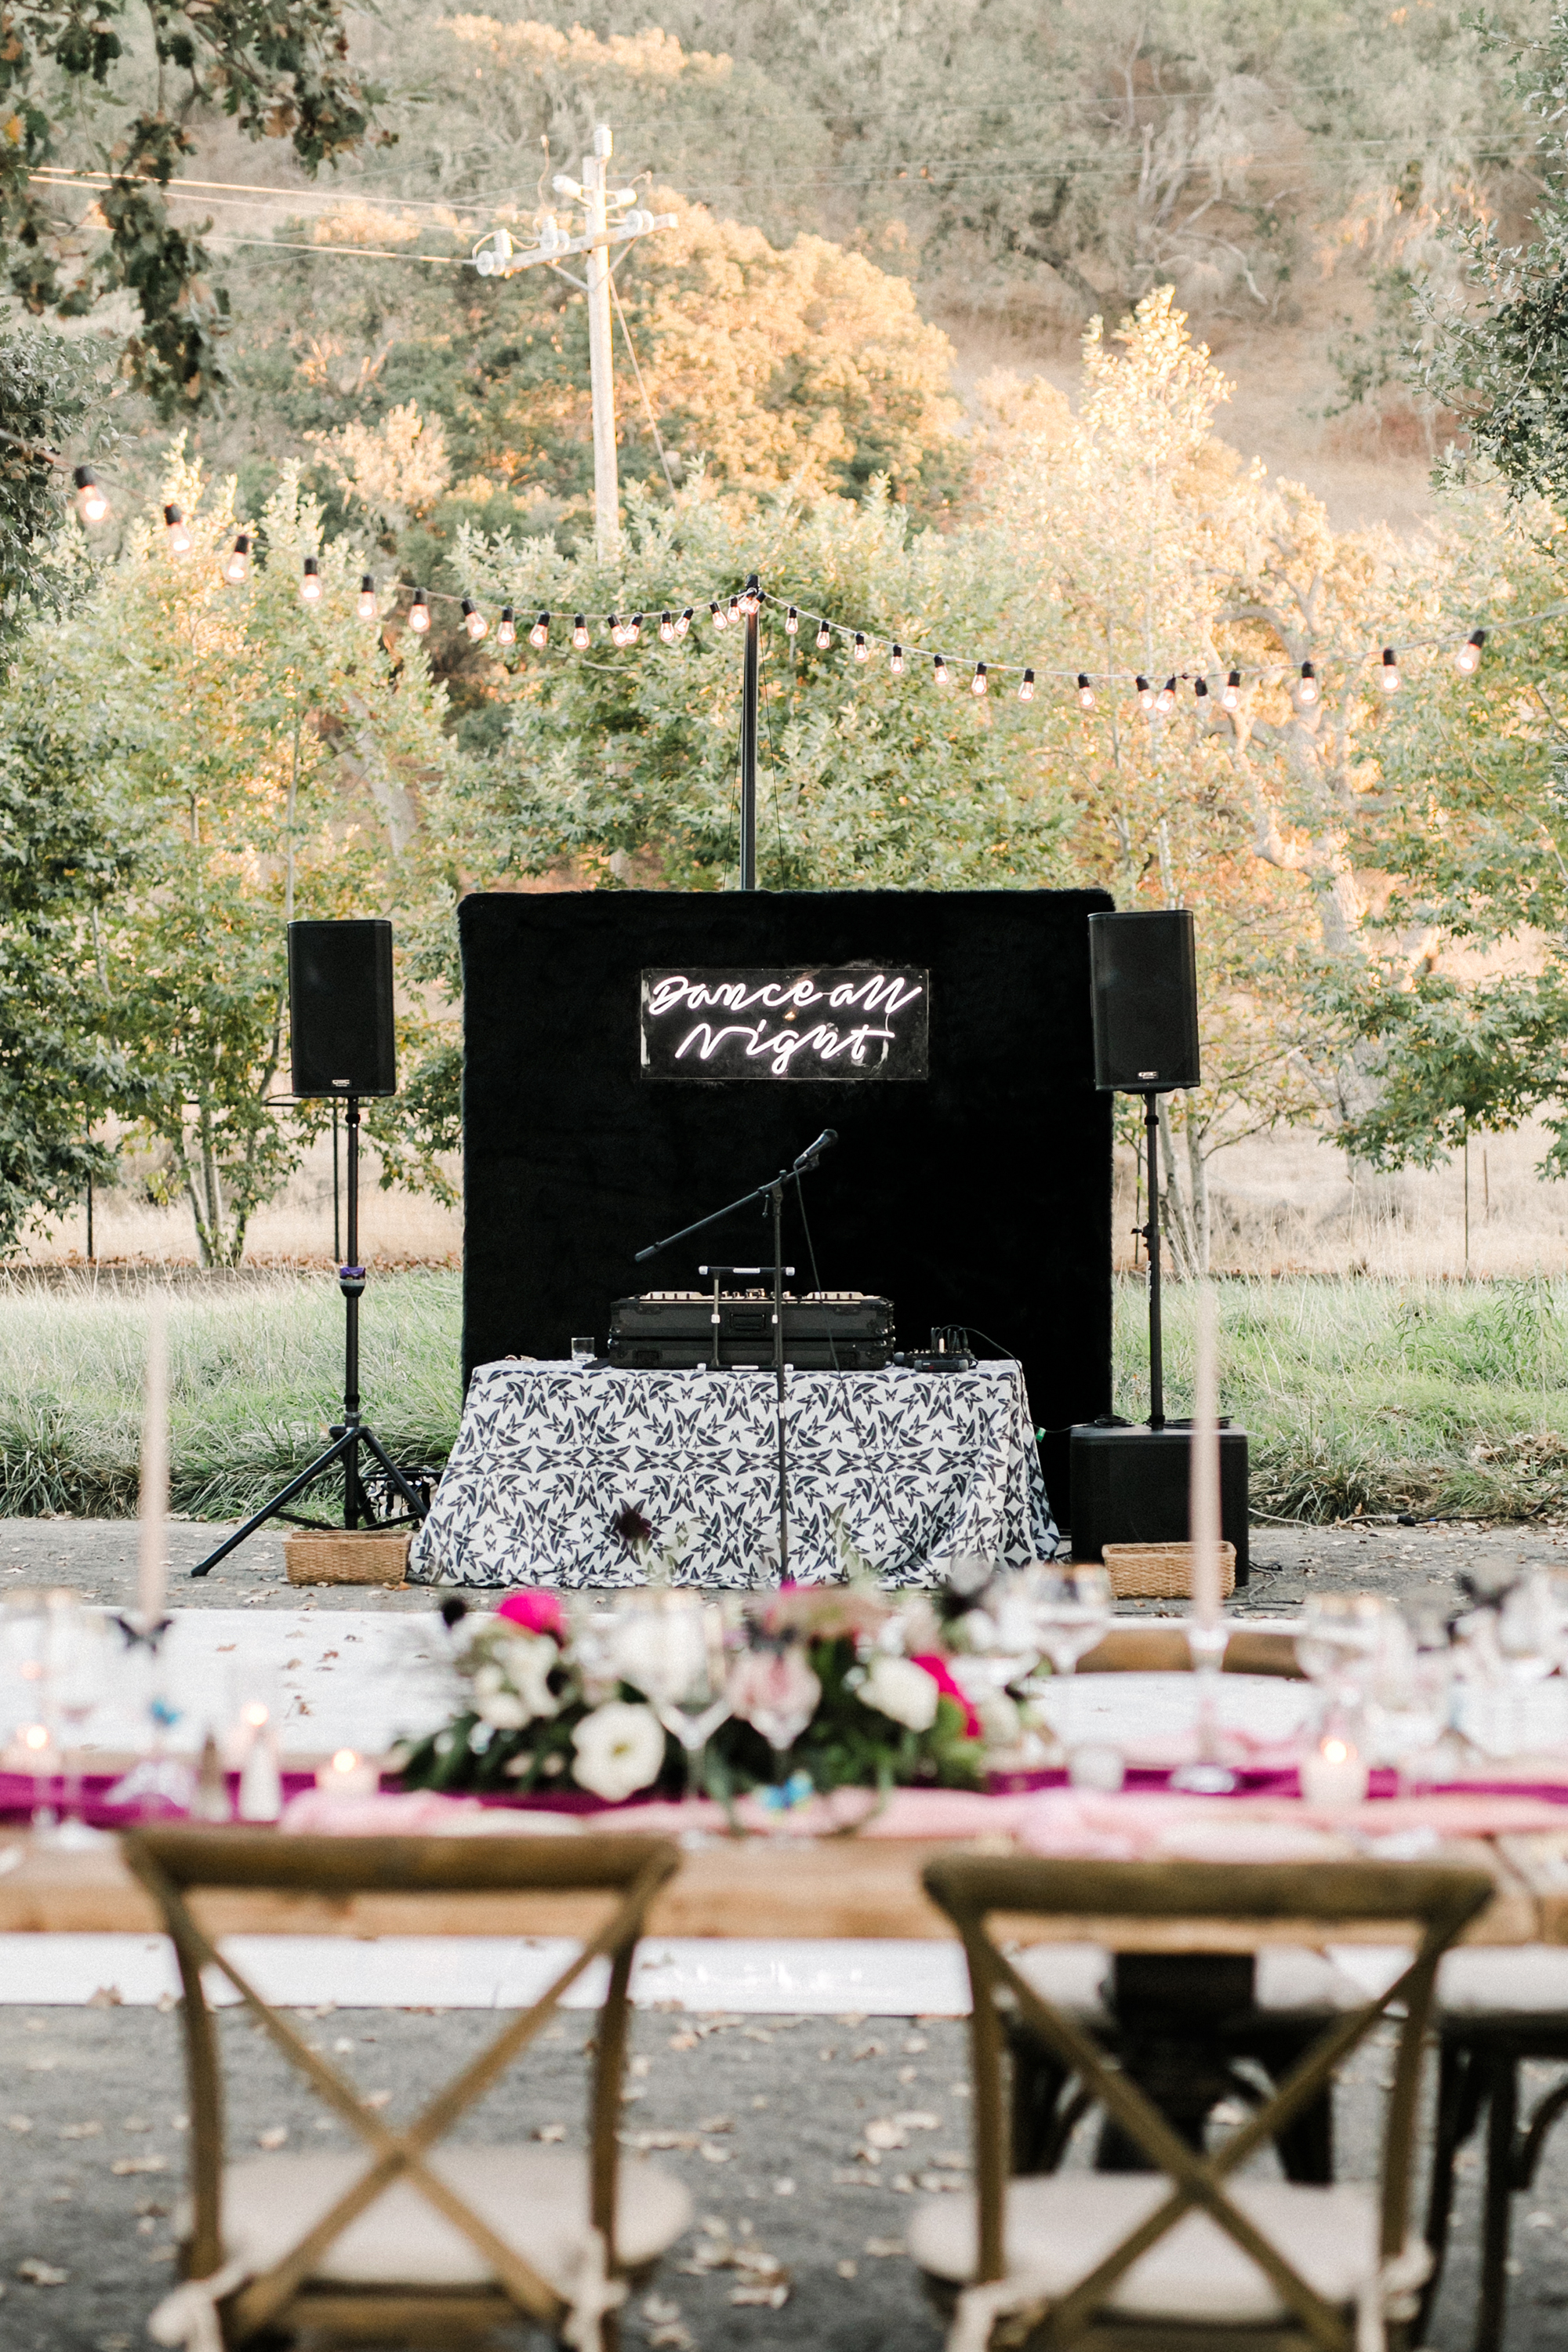 How to Make Sure Your Band or DJ Is Taken Care of During the Wedding